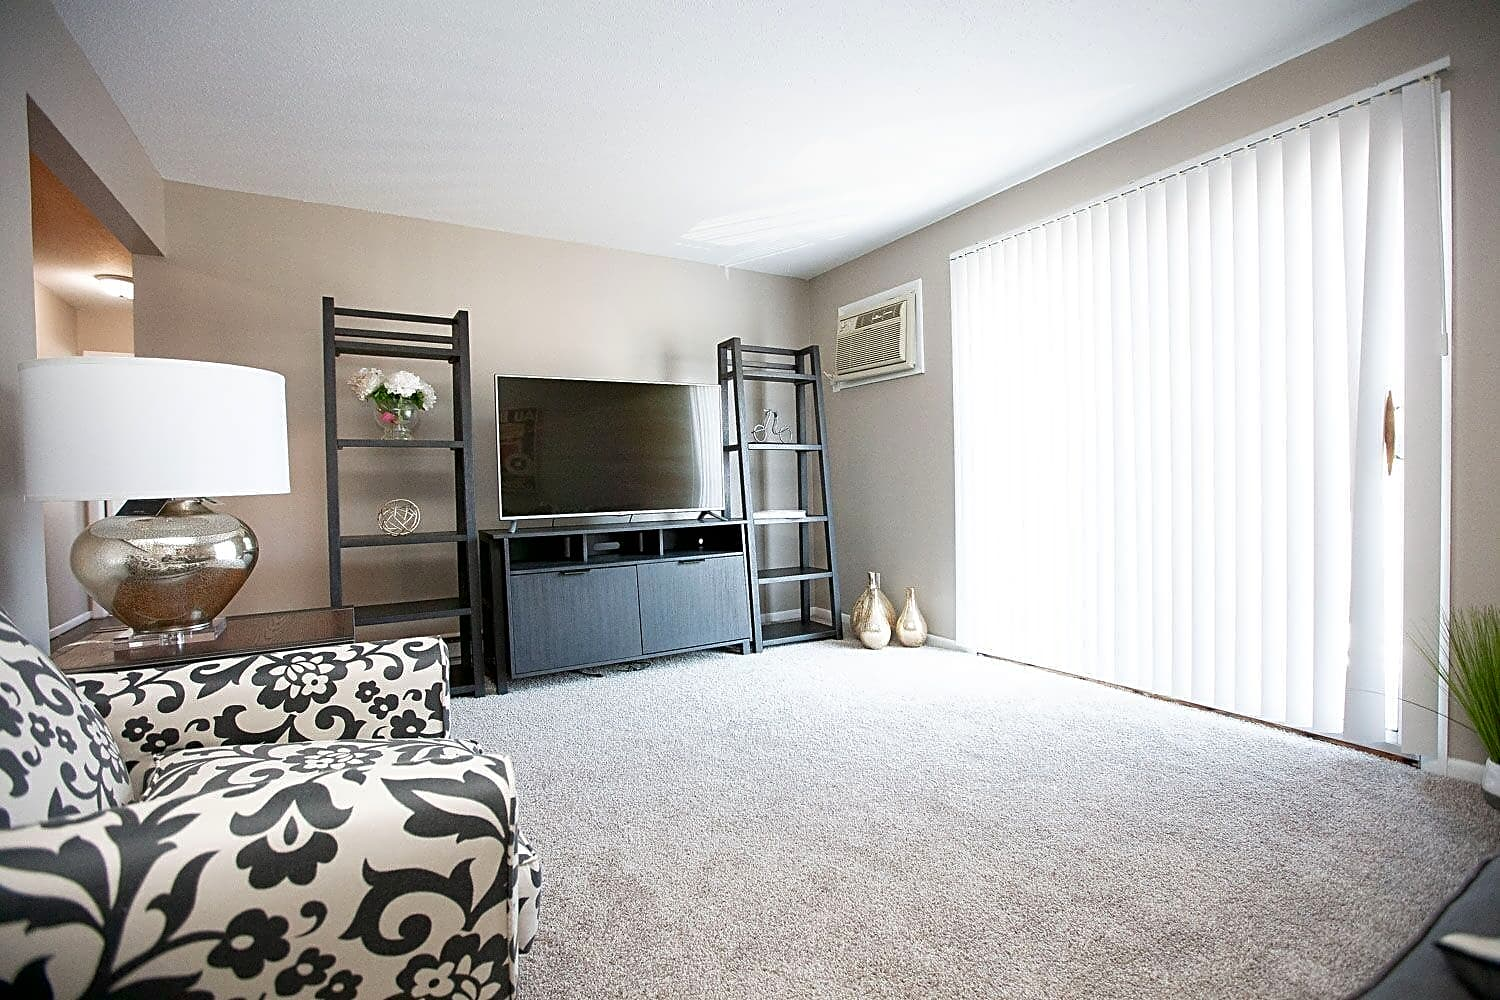 Apartments Near BGSU Brandon Manor for Bowling Green State University Students in Bowling Green, OH